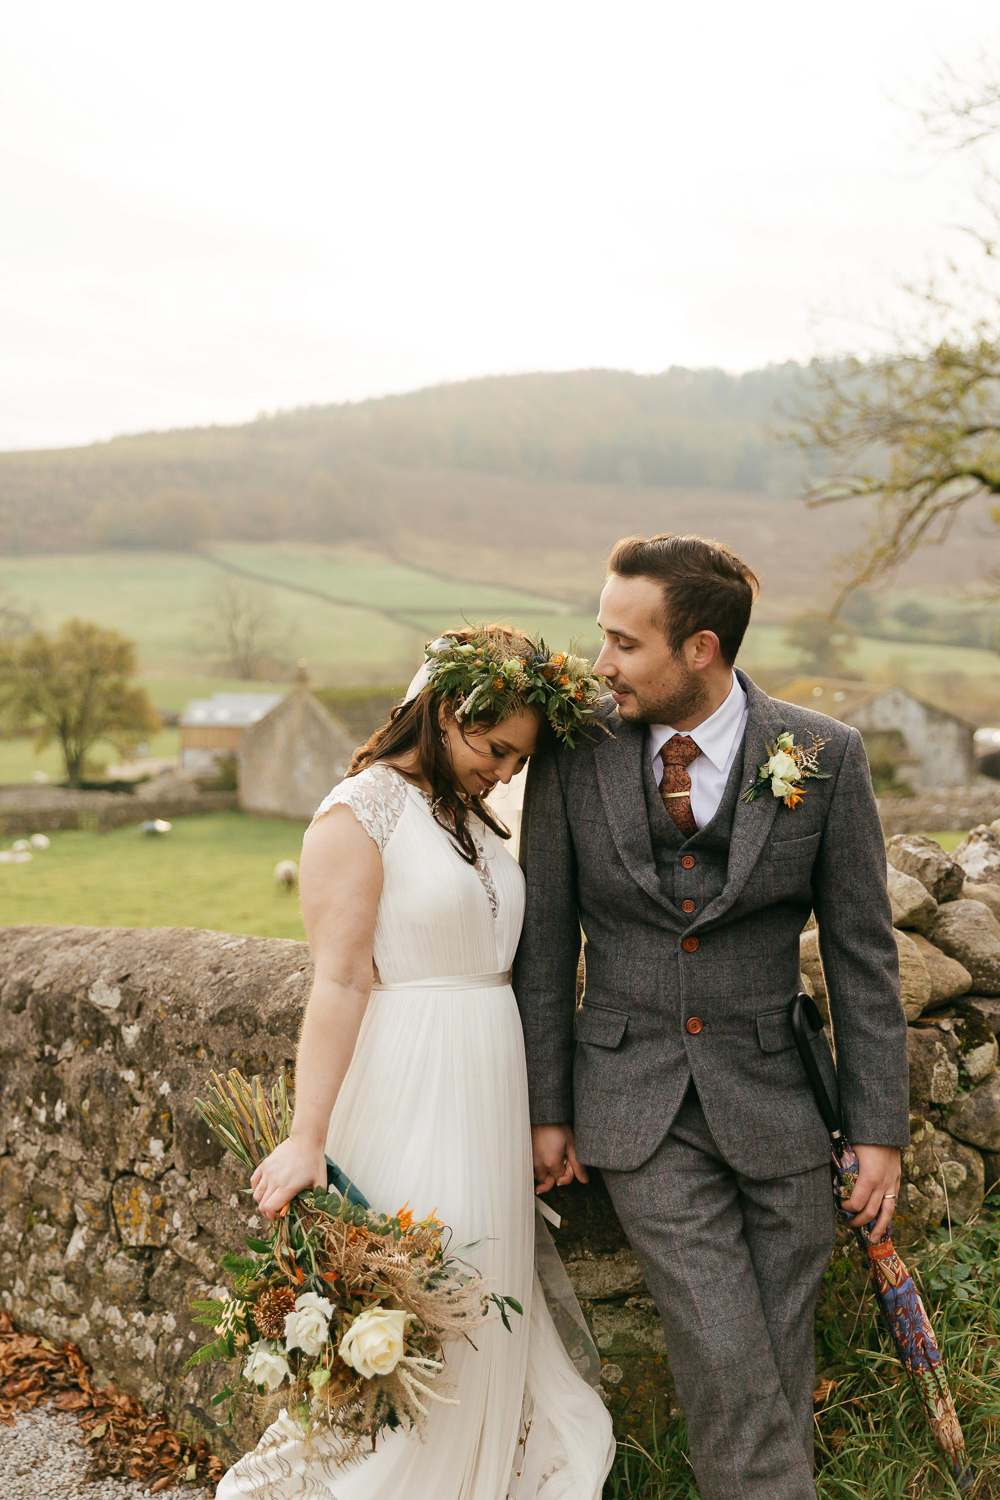 Stylish Autumnal wedding photography by creative cotswolds wedding photographer